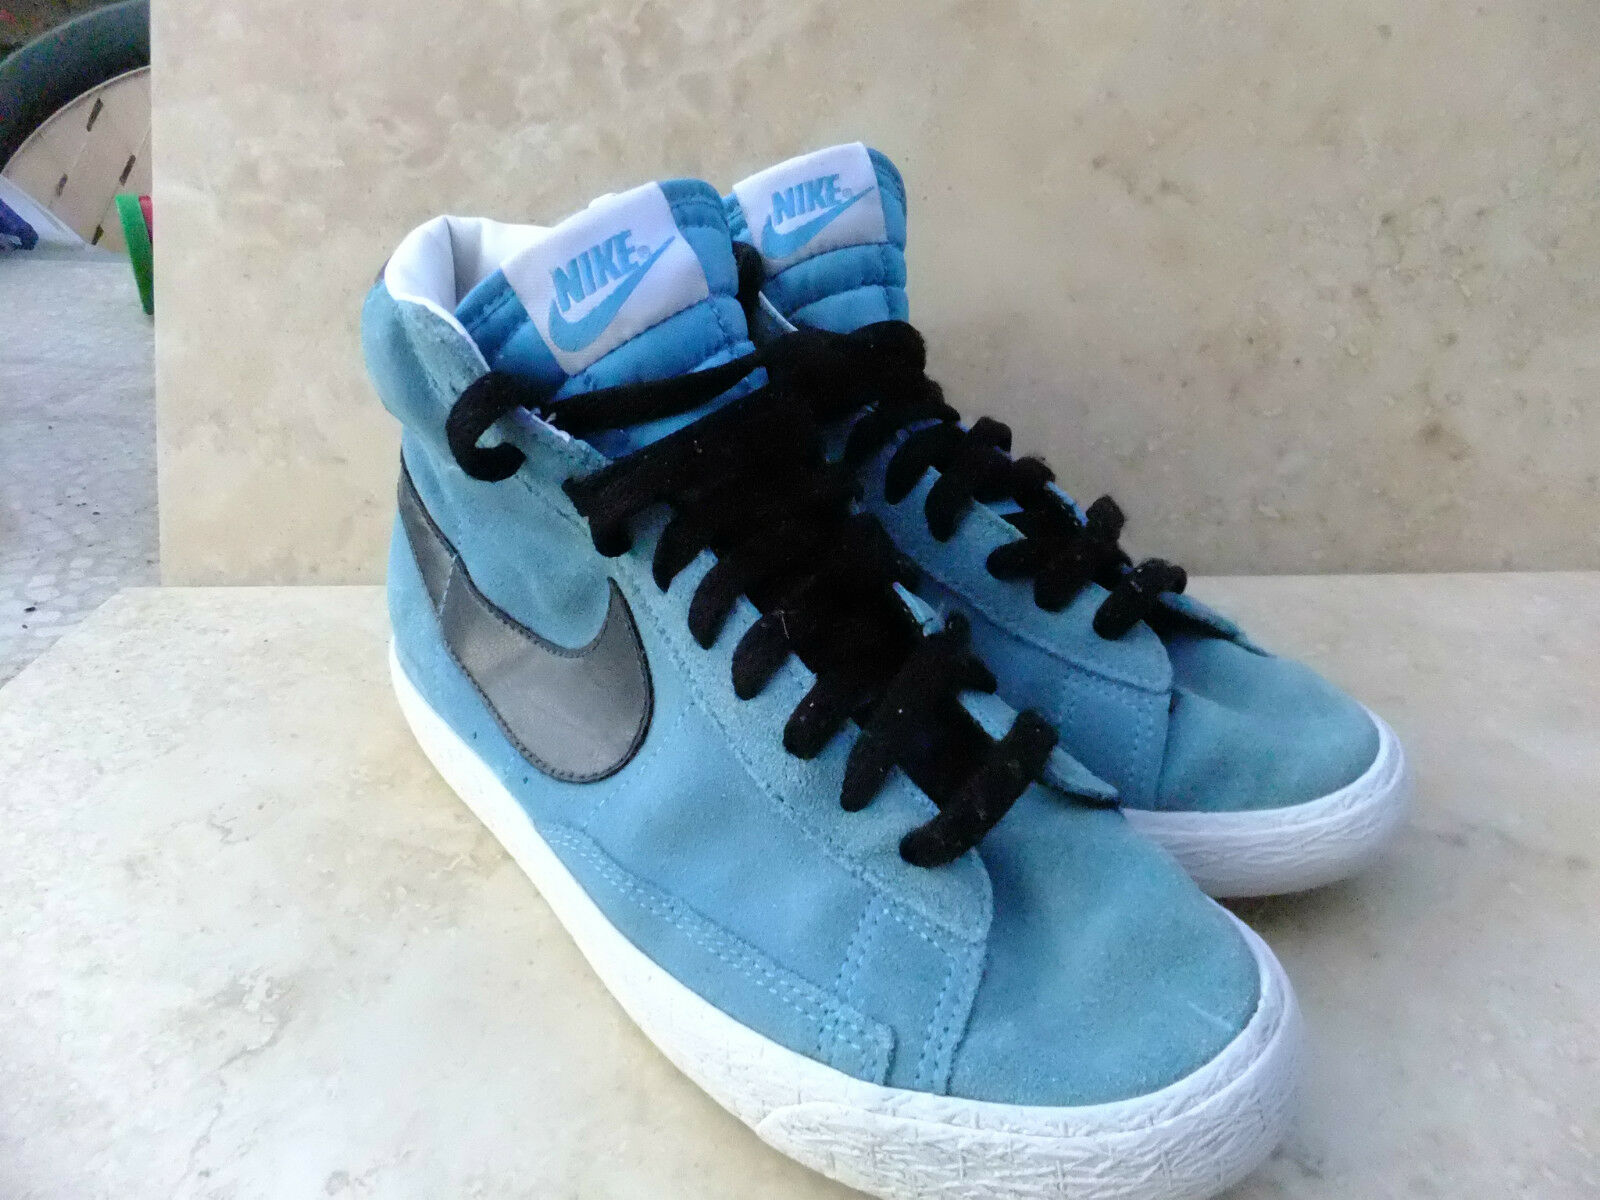 Nike Blazer Hi Top BLEU en Daim Baskets Taille UK 4 EUR 36.5